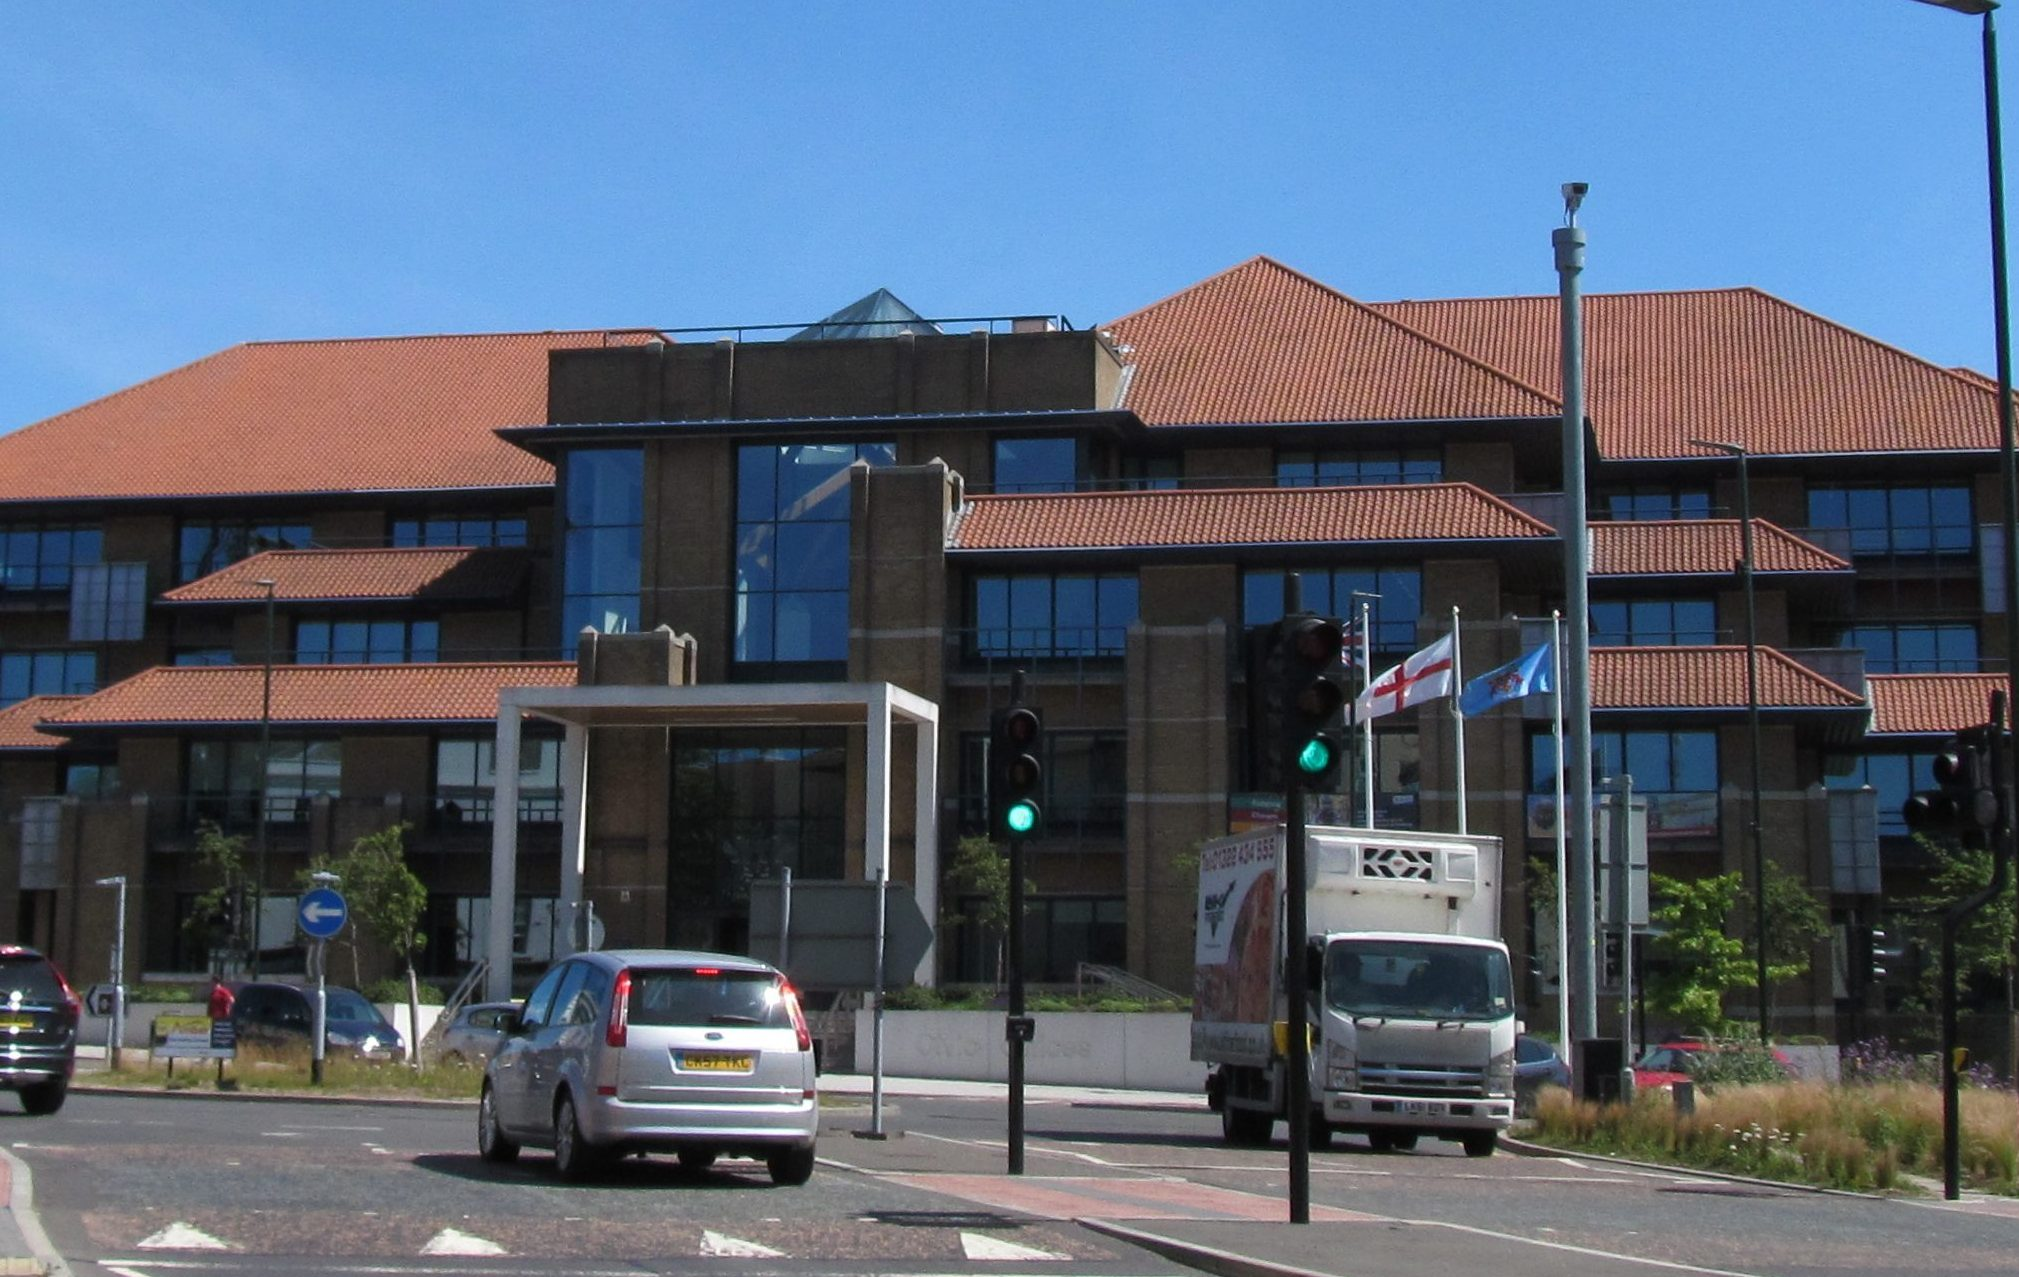 Bexley Council gain £9 million government bailout after financial mess